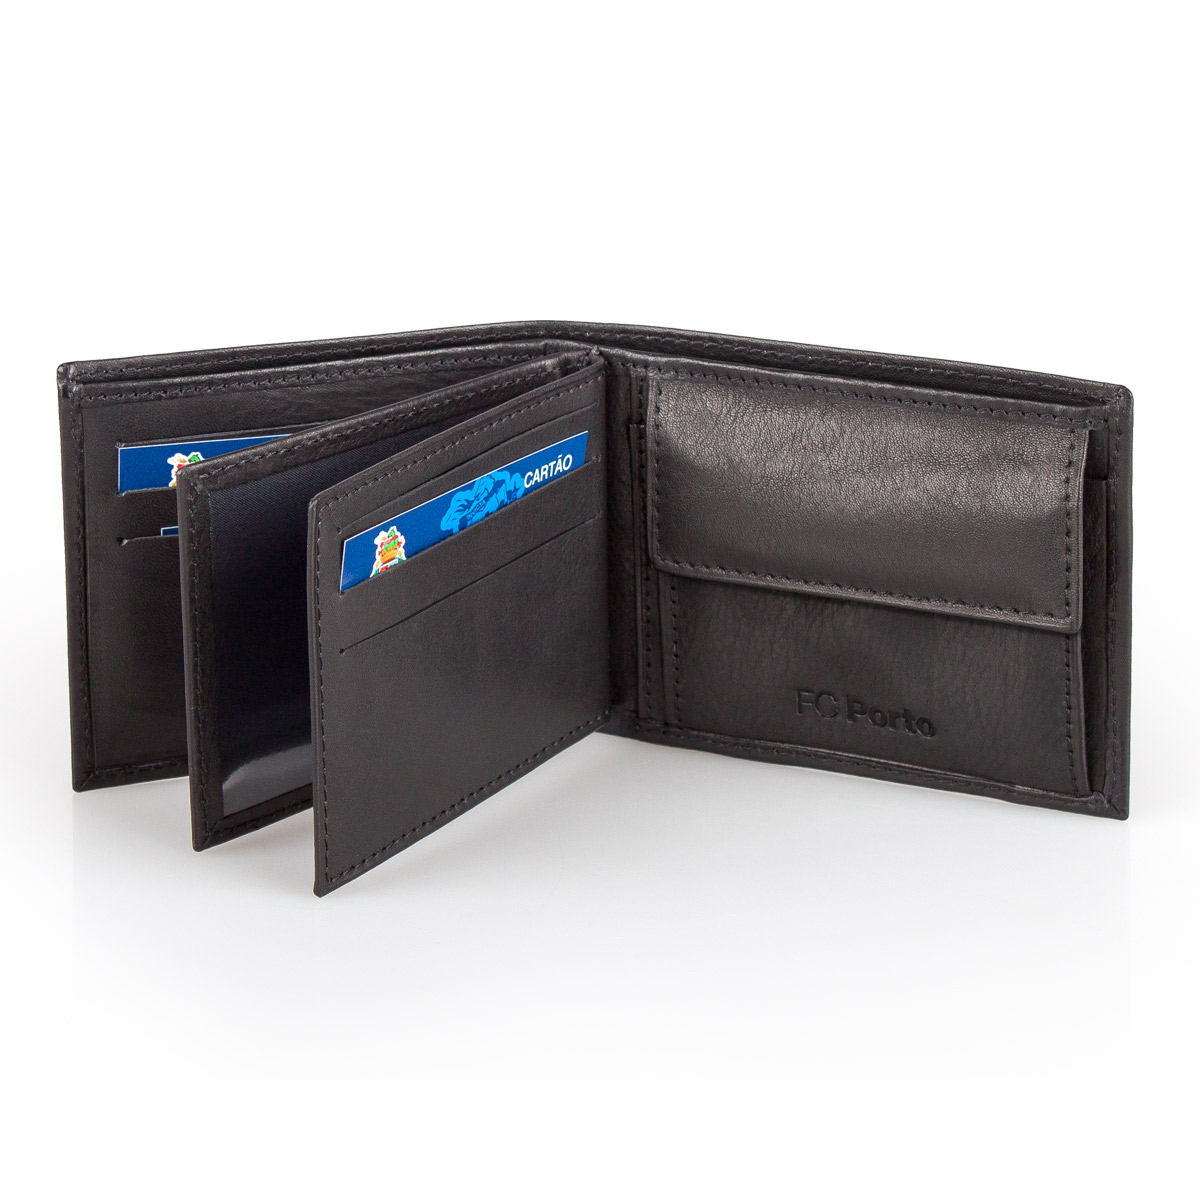 Leather Wallet F.C. PORTO Black 11.5cm – image 3